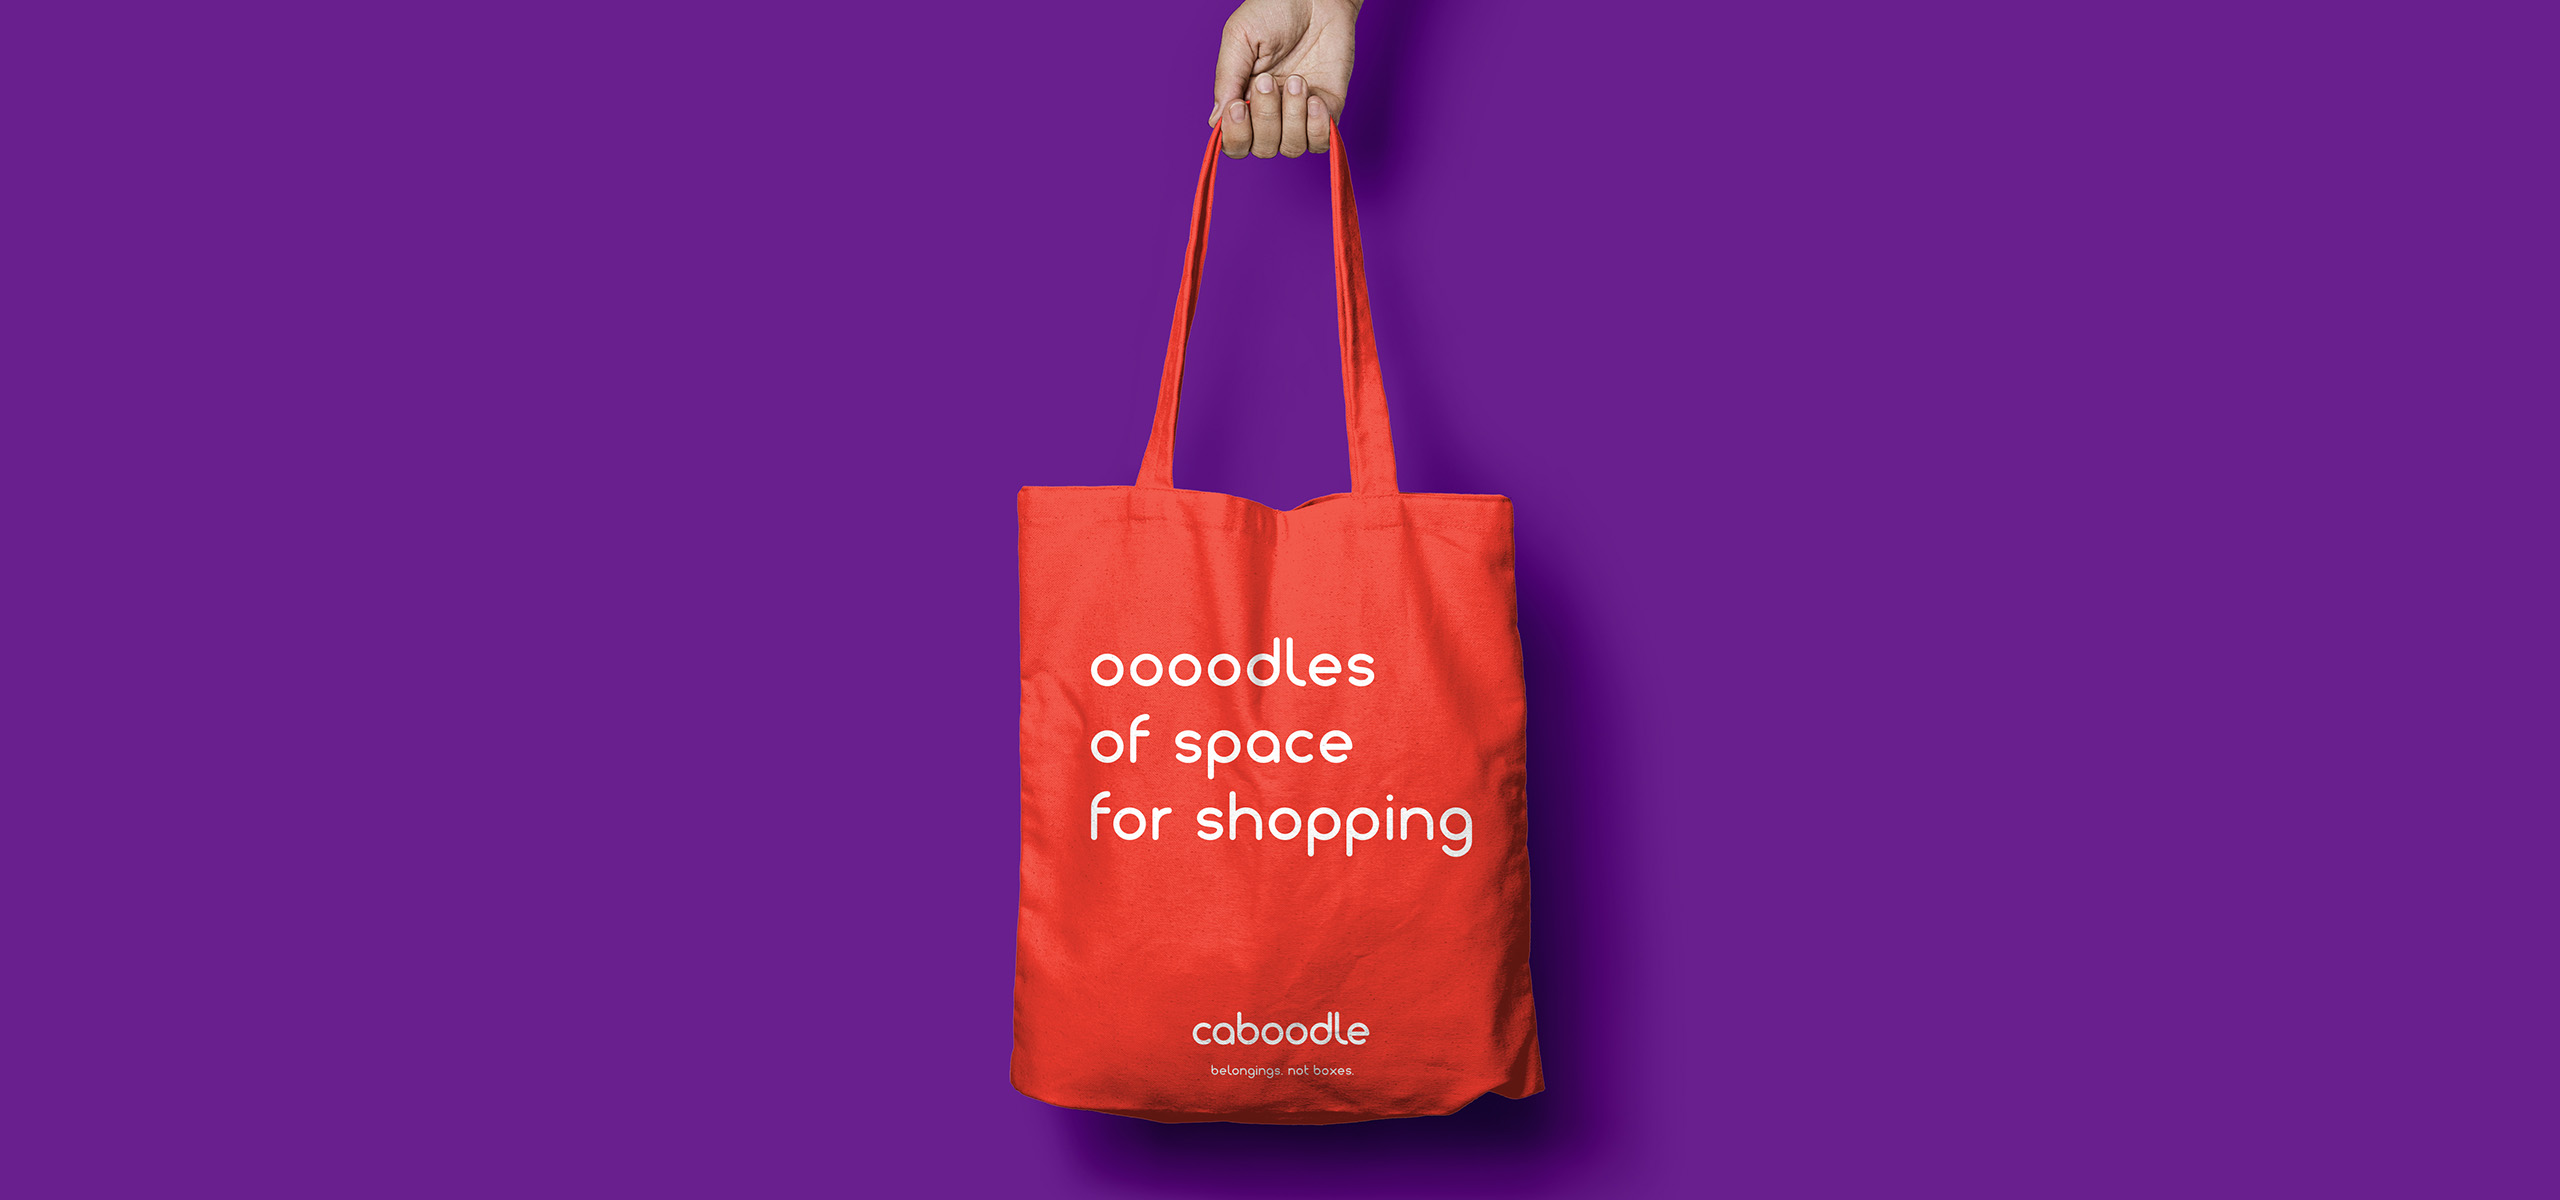 Tote bag design for new startup brand Caboodle, designed by White Bear Studio